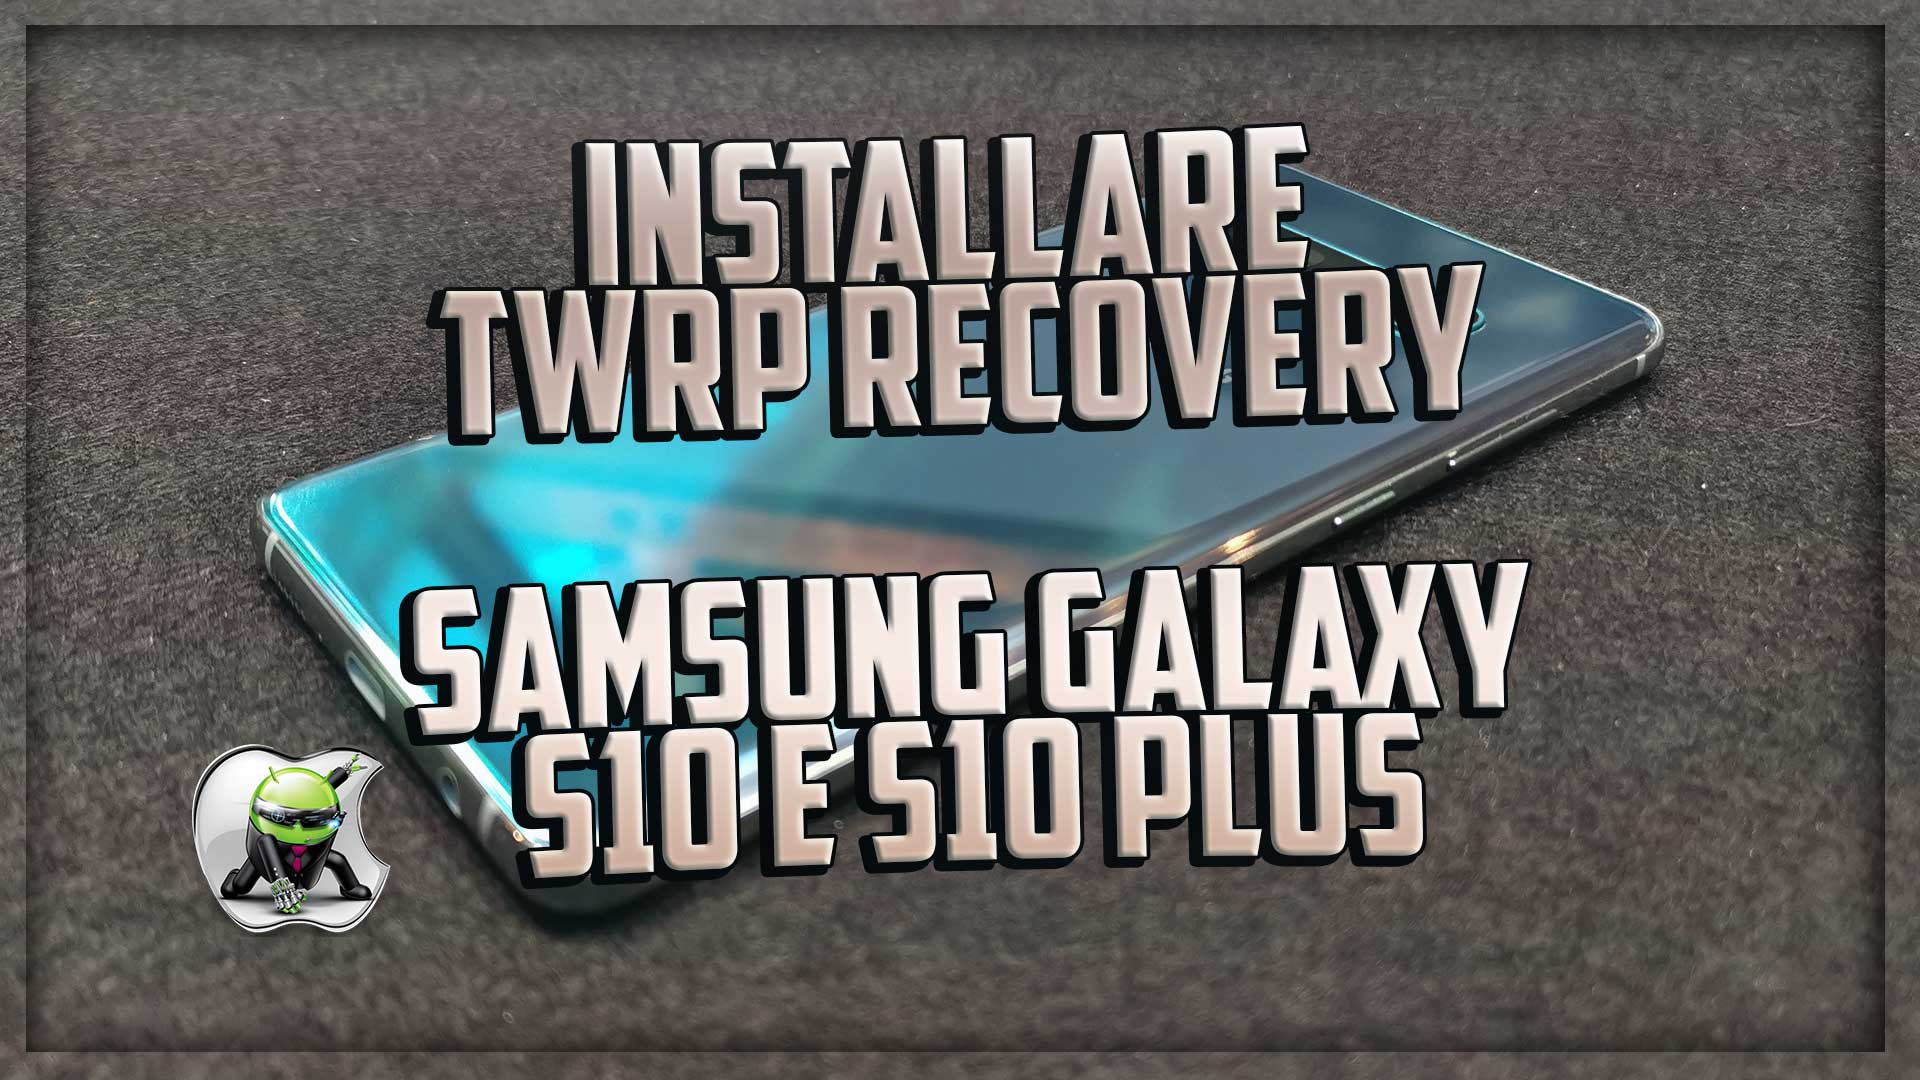 twrp recovery s10